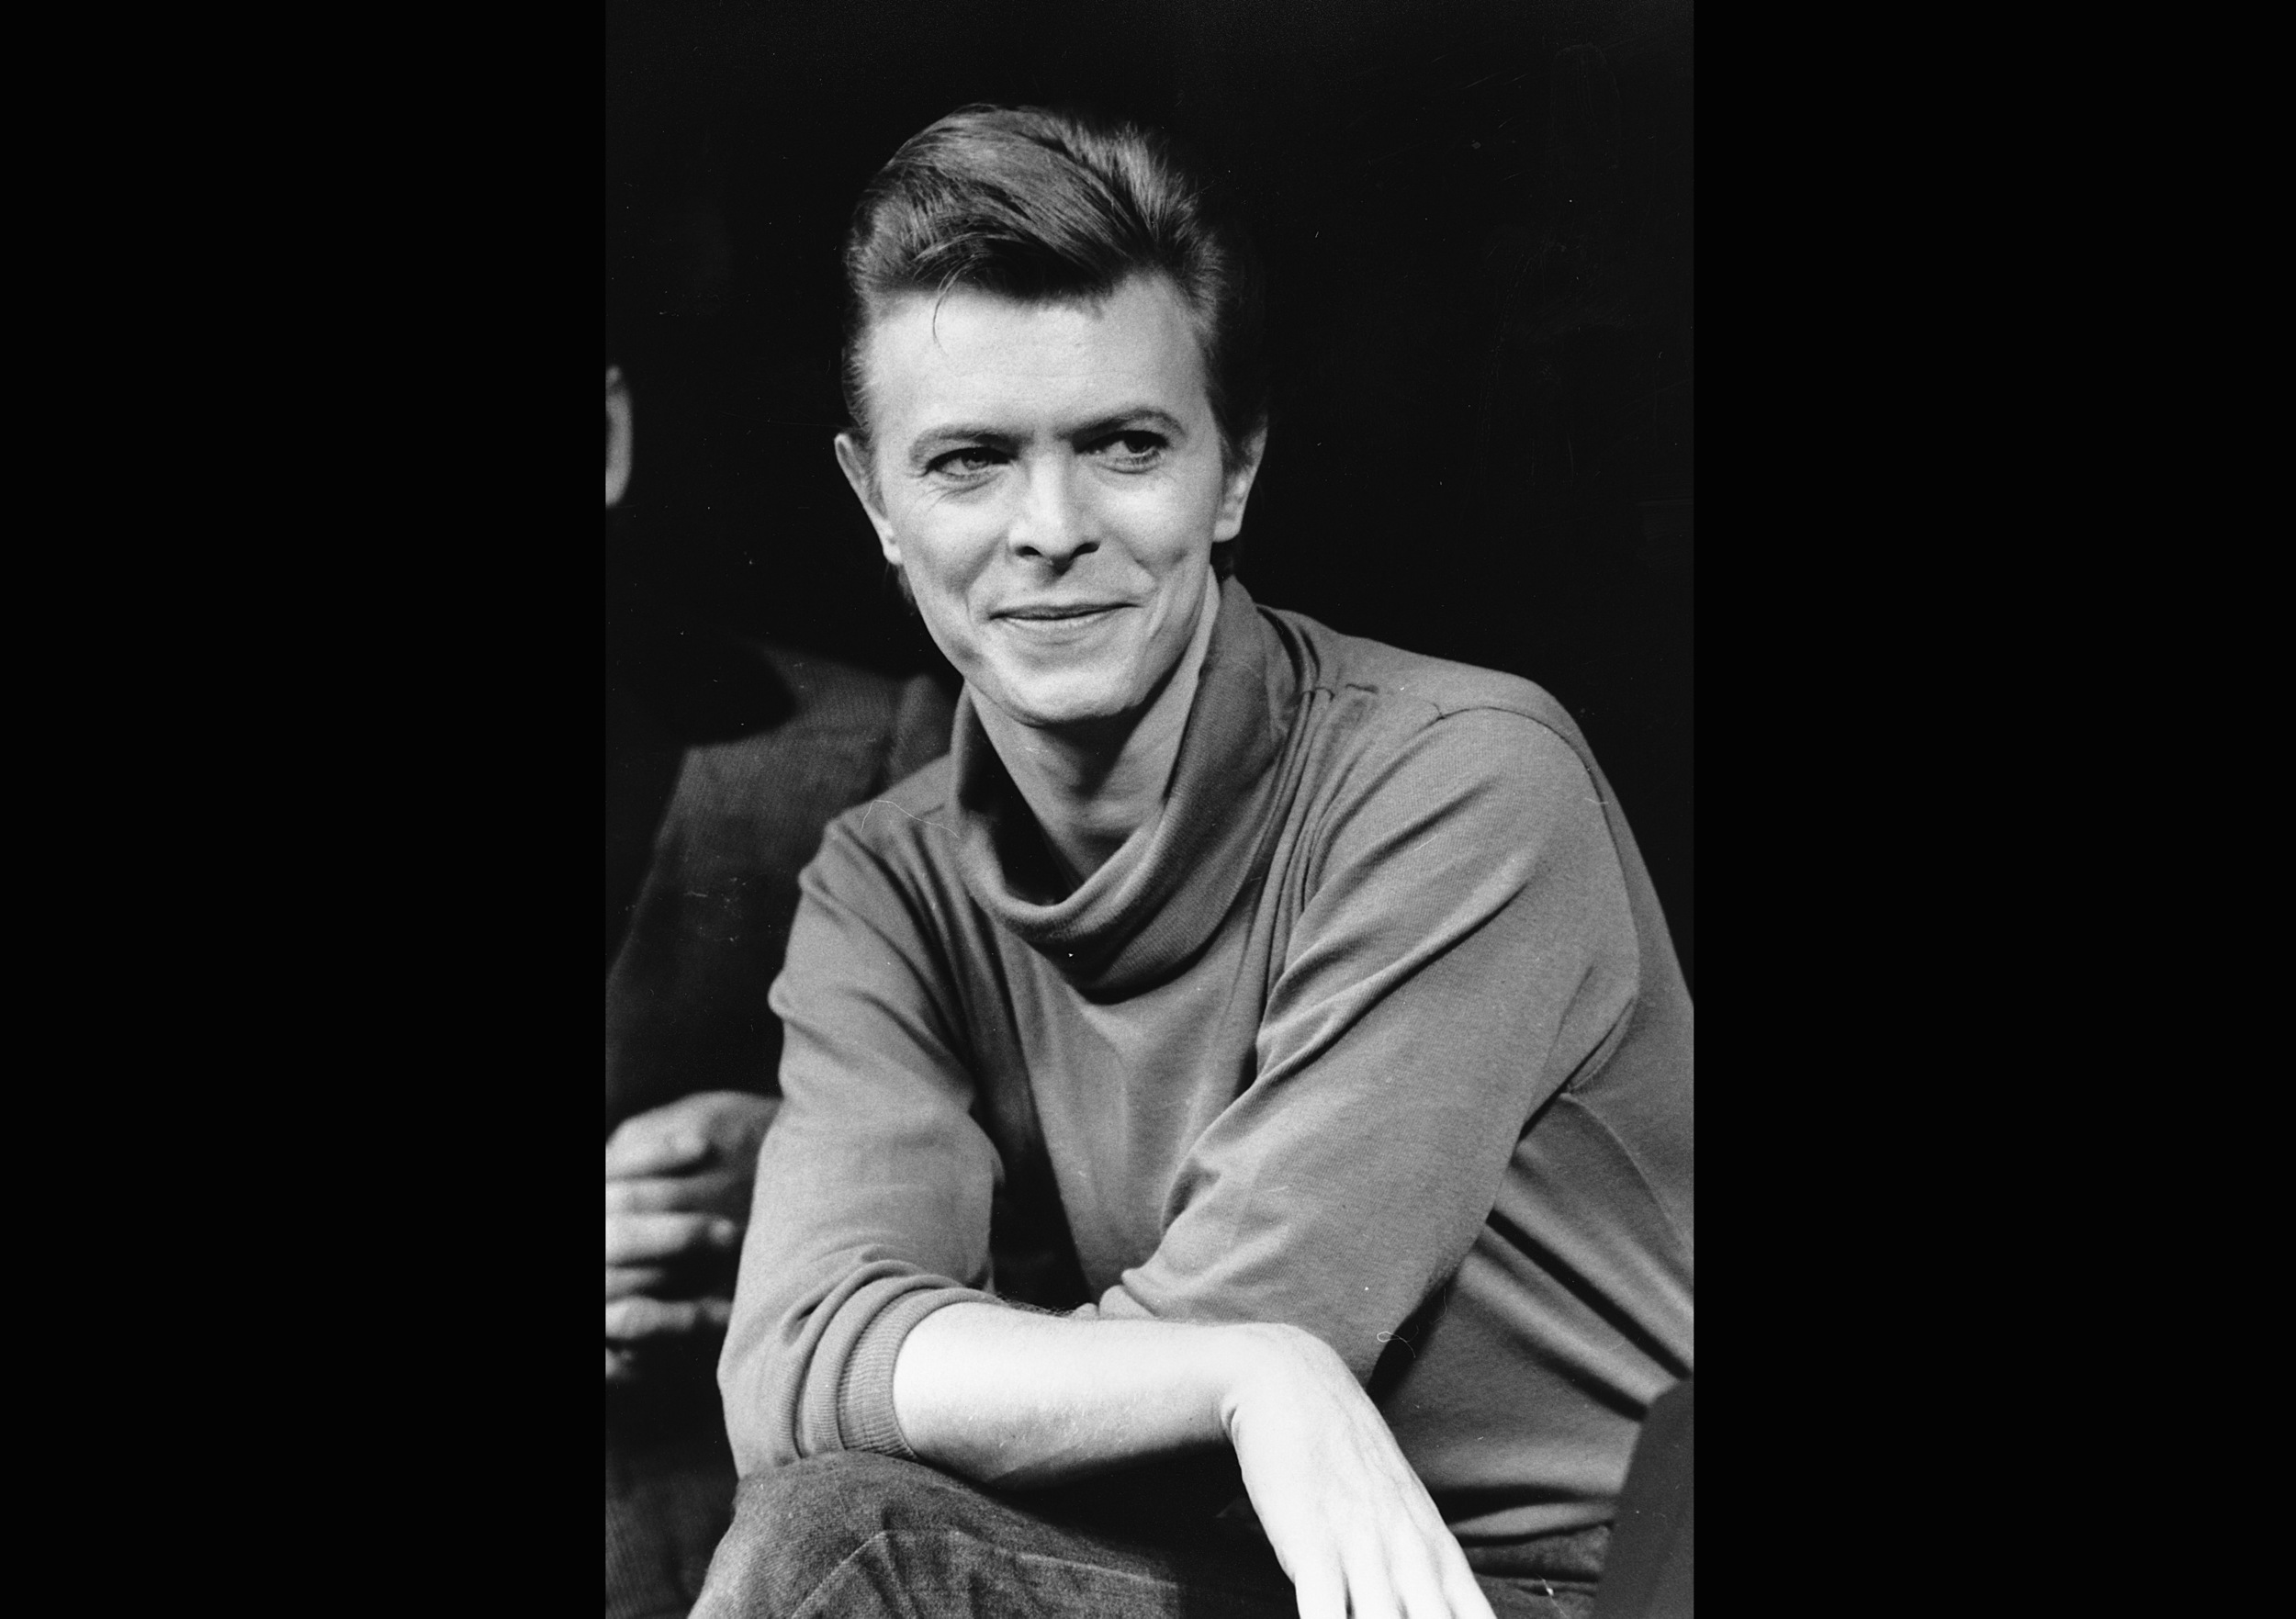 Last photo of David Bowie, dapper and laughing - AOL Entertainment